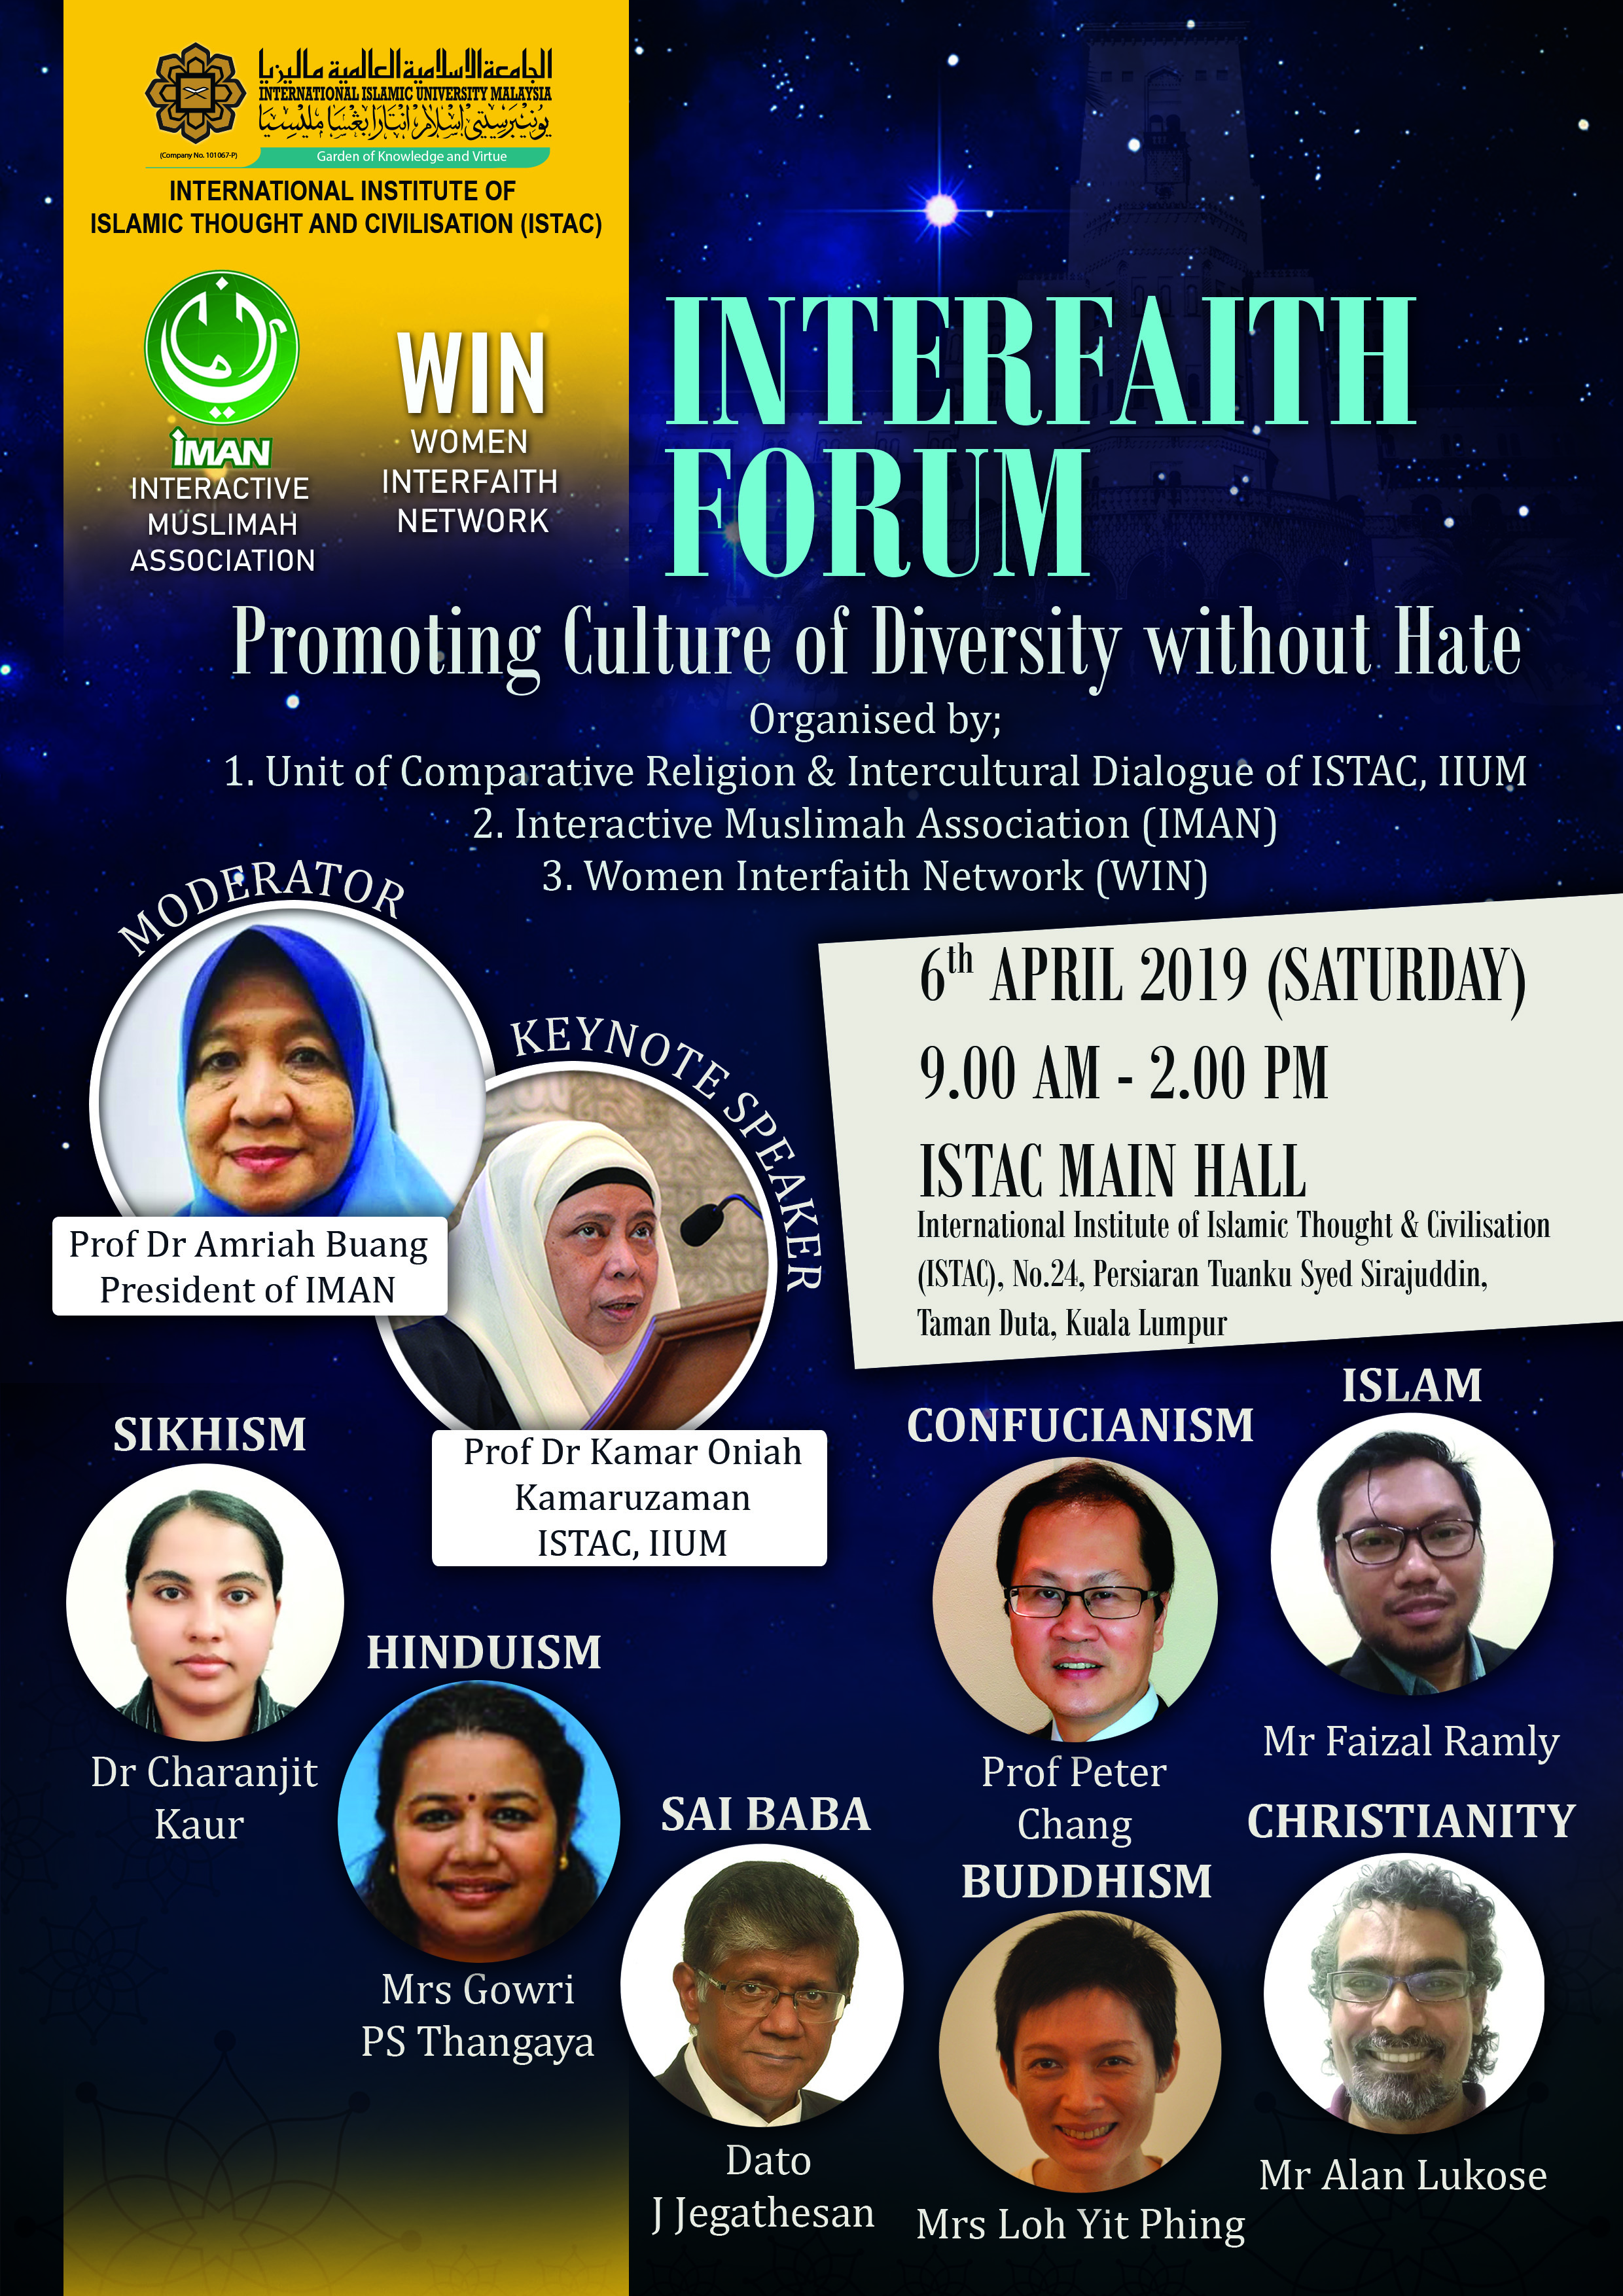 INTERFAITH FORUM : Promoting Culture of Diversity Without Hate